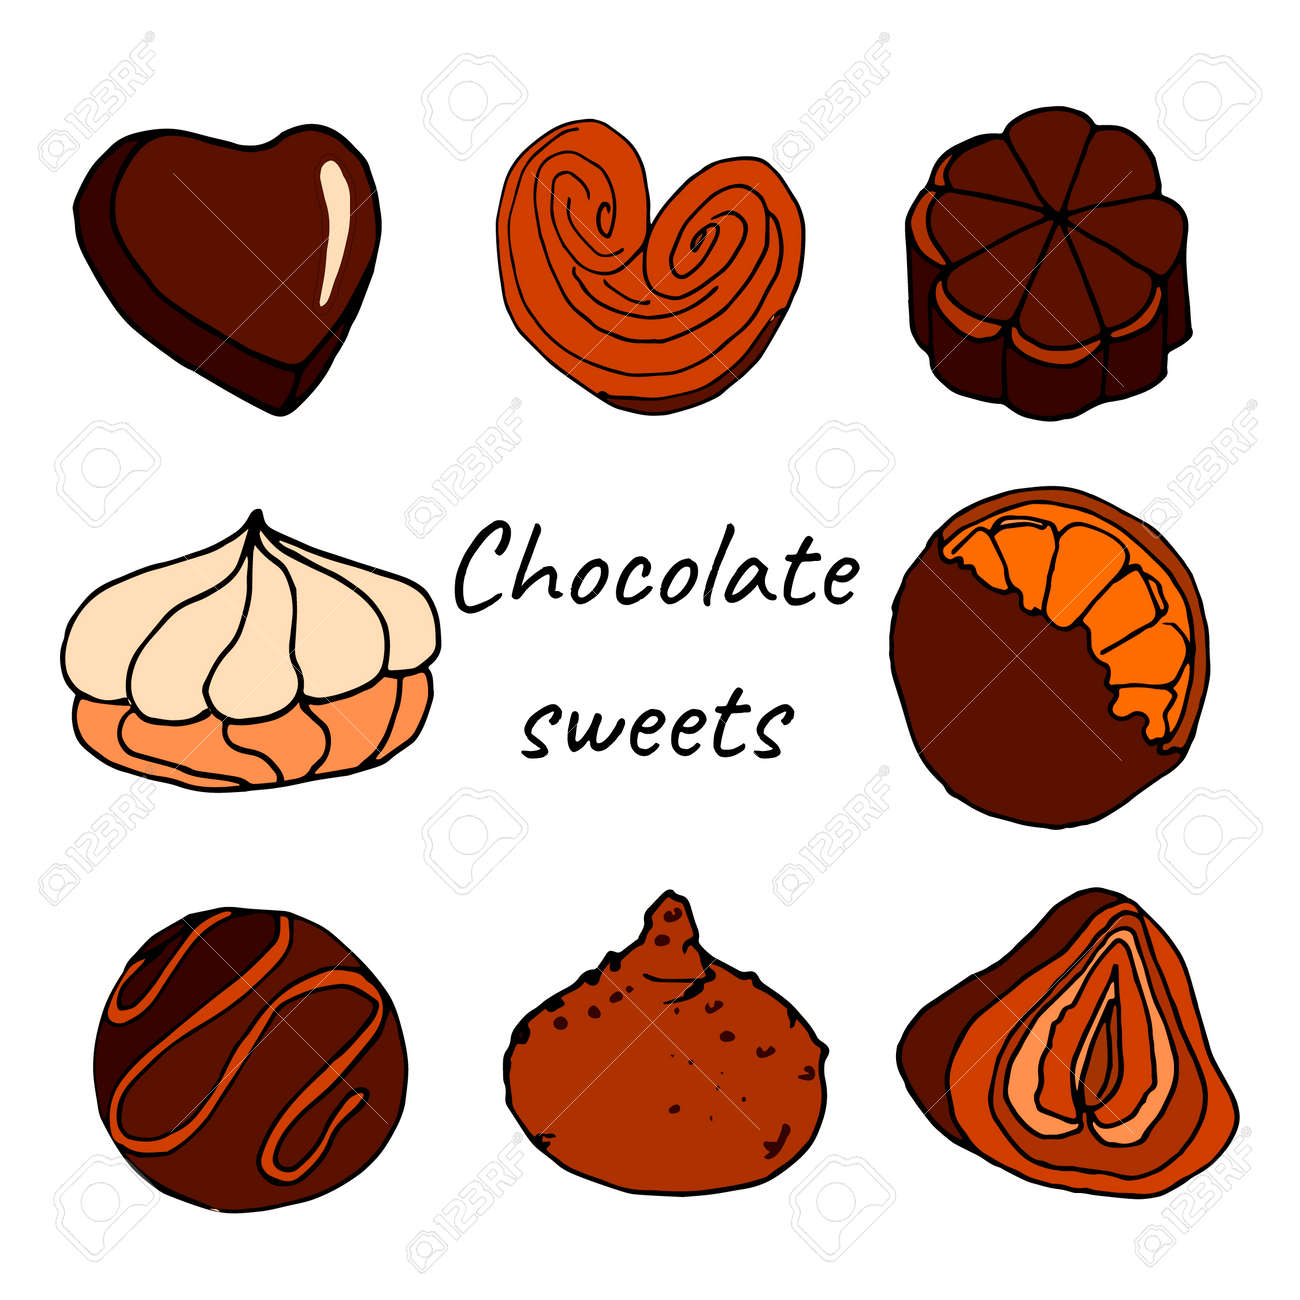 Colored chocolate sweets doode set - 158886372